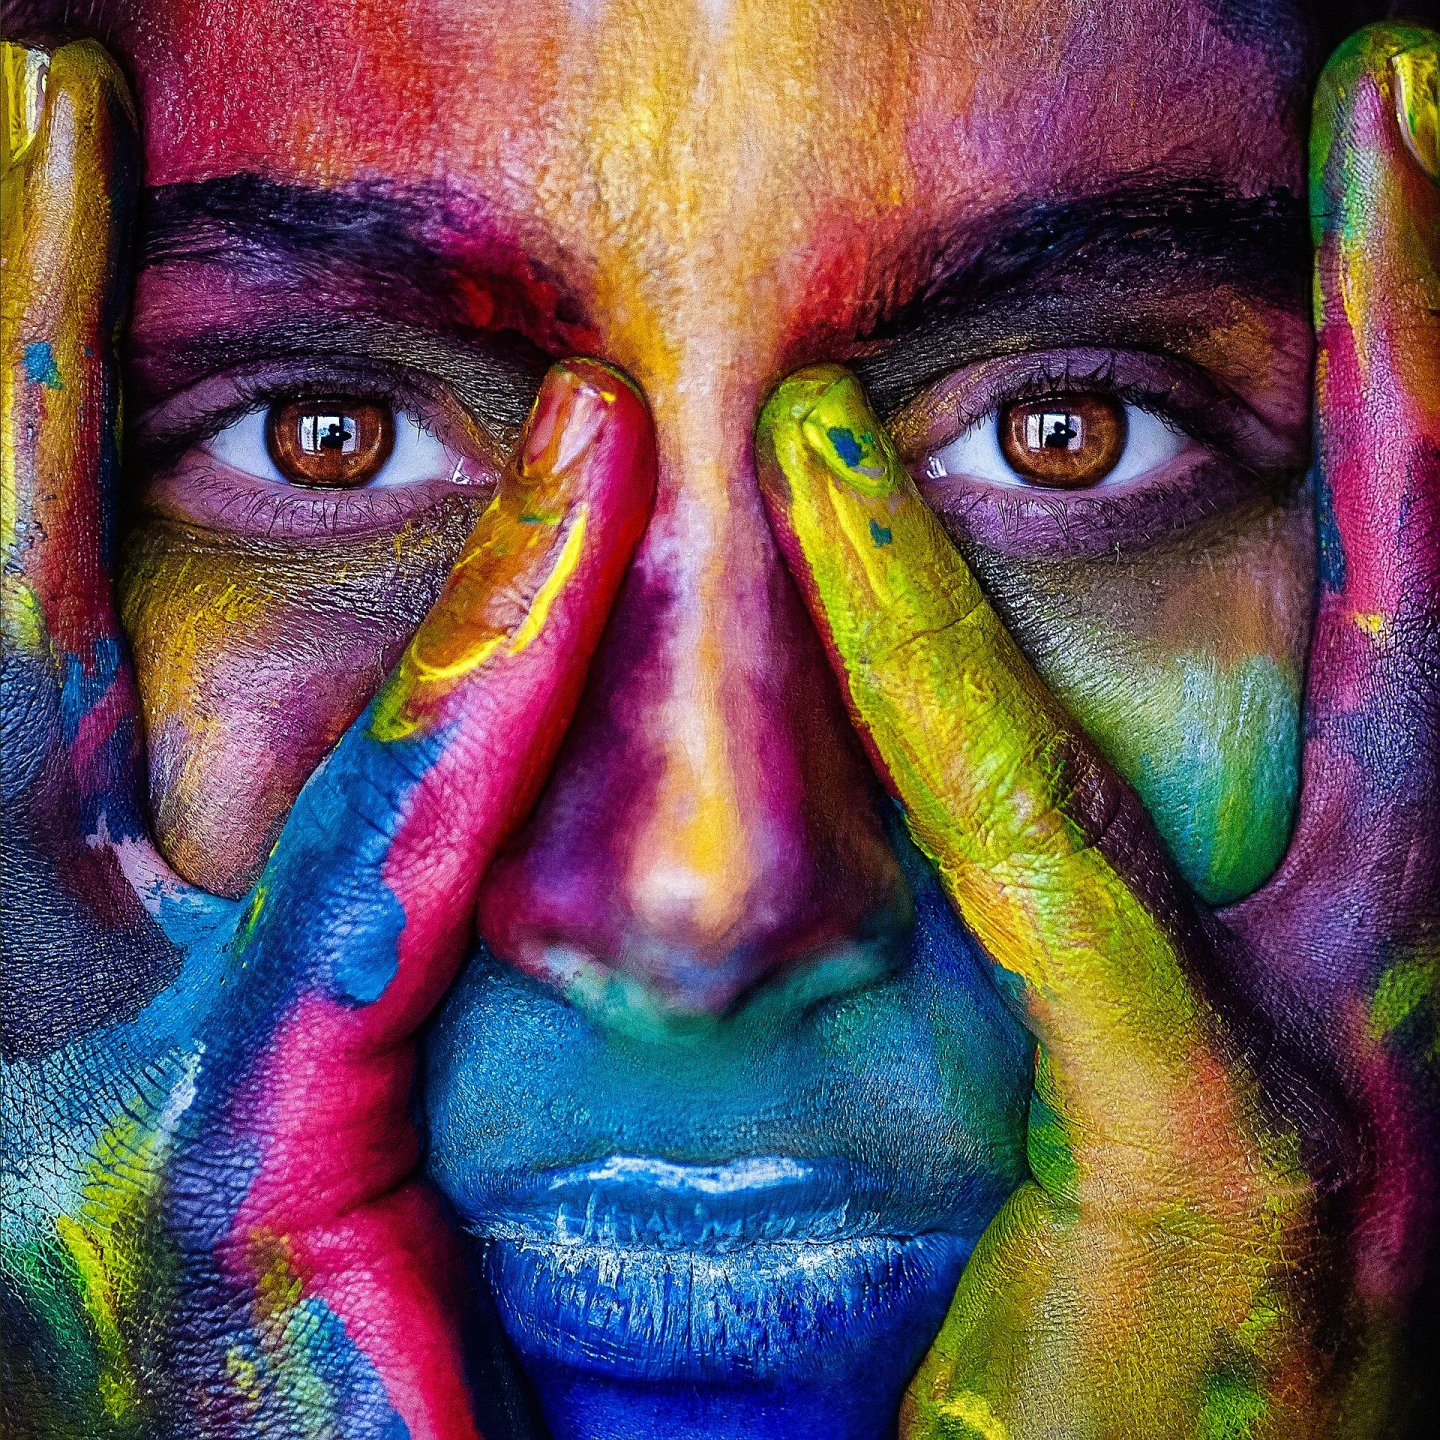 A close-up photo of a woman's face, with her hands played out around her eyes. She's covered in colourful paint.